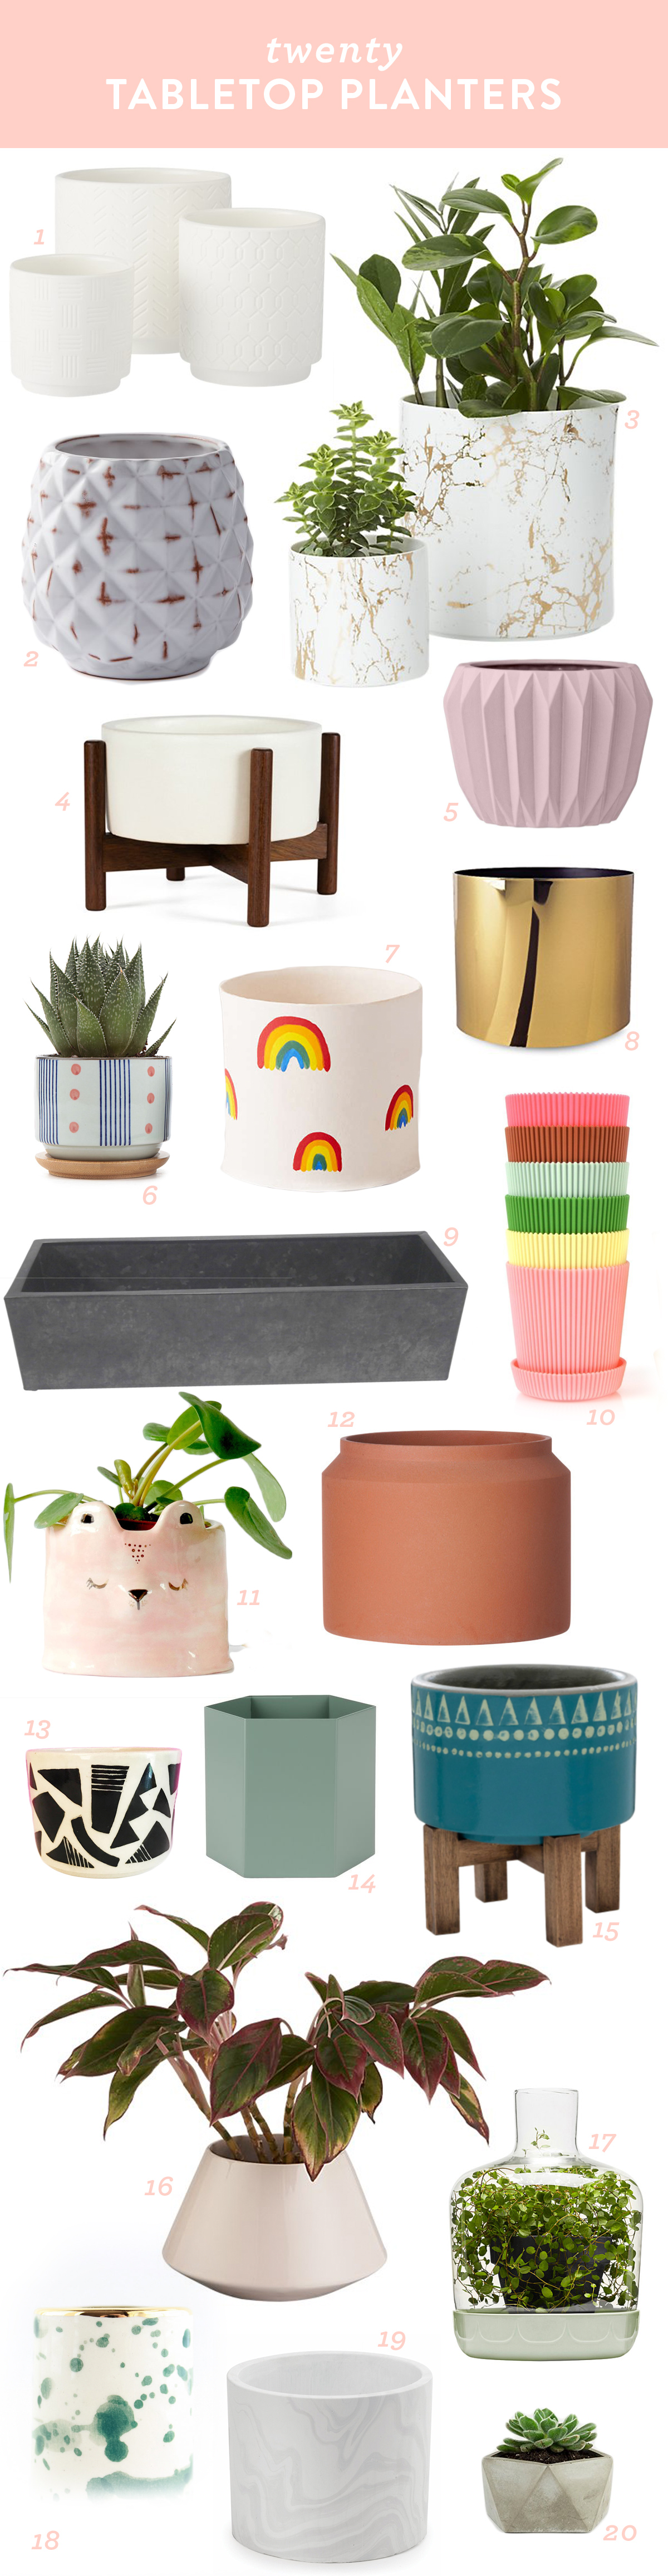 Add some greenery to your home with a houseplant in one of these pretty tabletop planters.